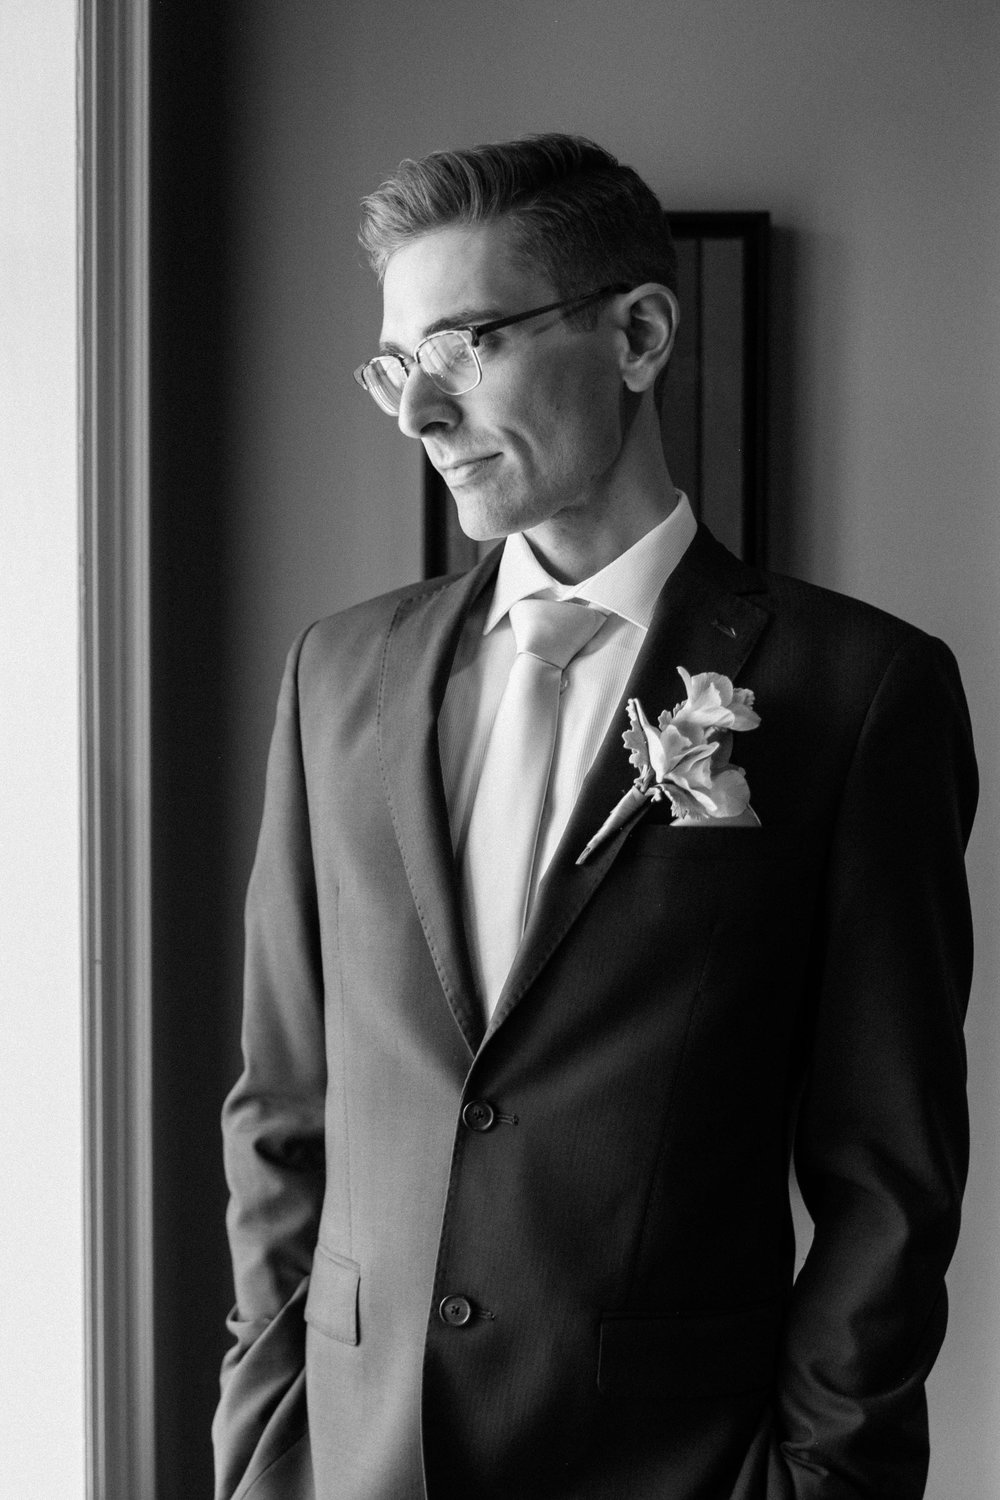 Black and white portrait of groom with glasses